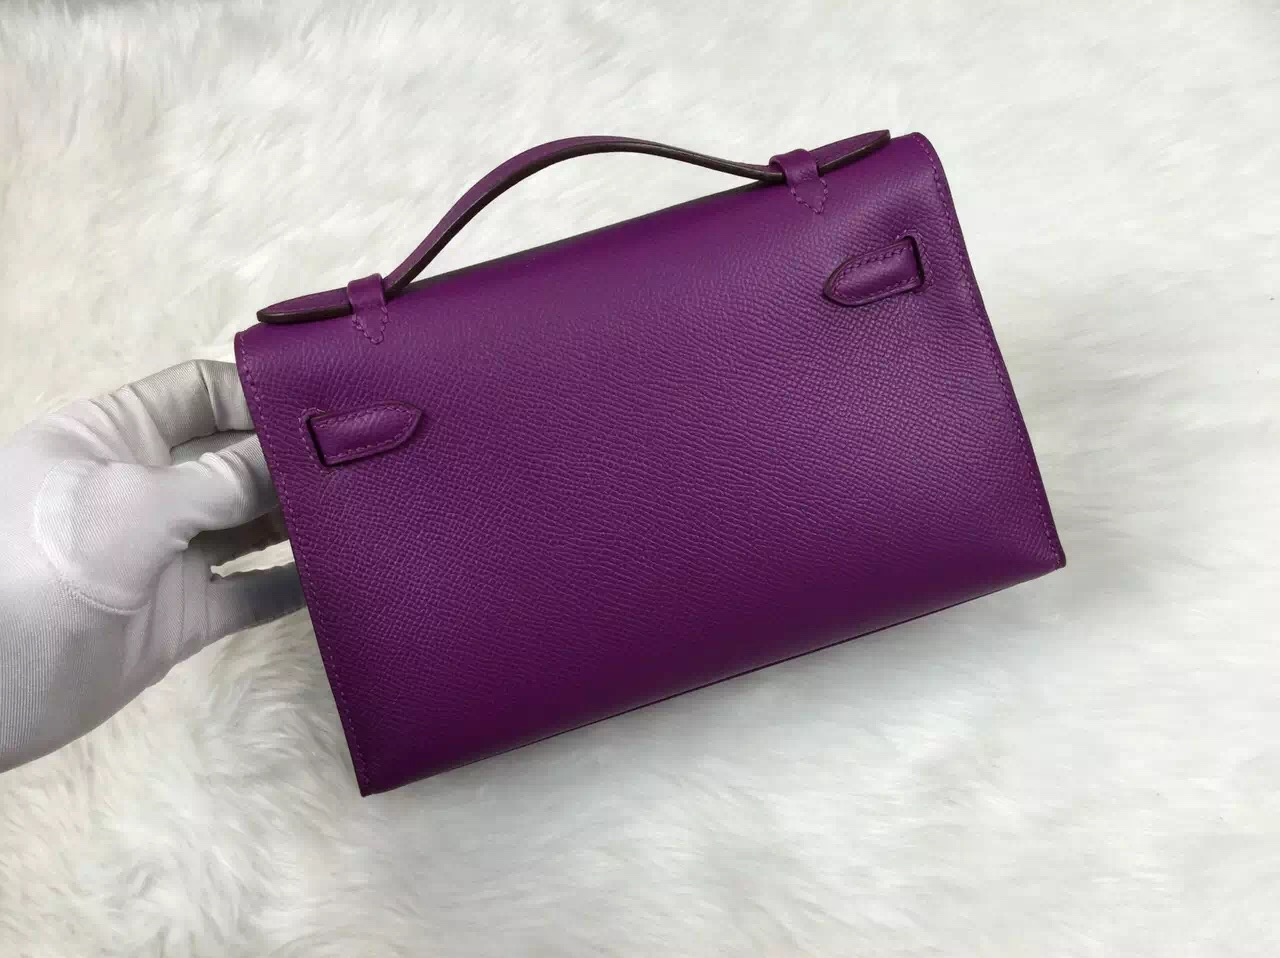 New Fashion Bag Hermes Mini Kelly Bag P9 Anemone Purple Epsom Leather Tote Bag